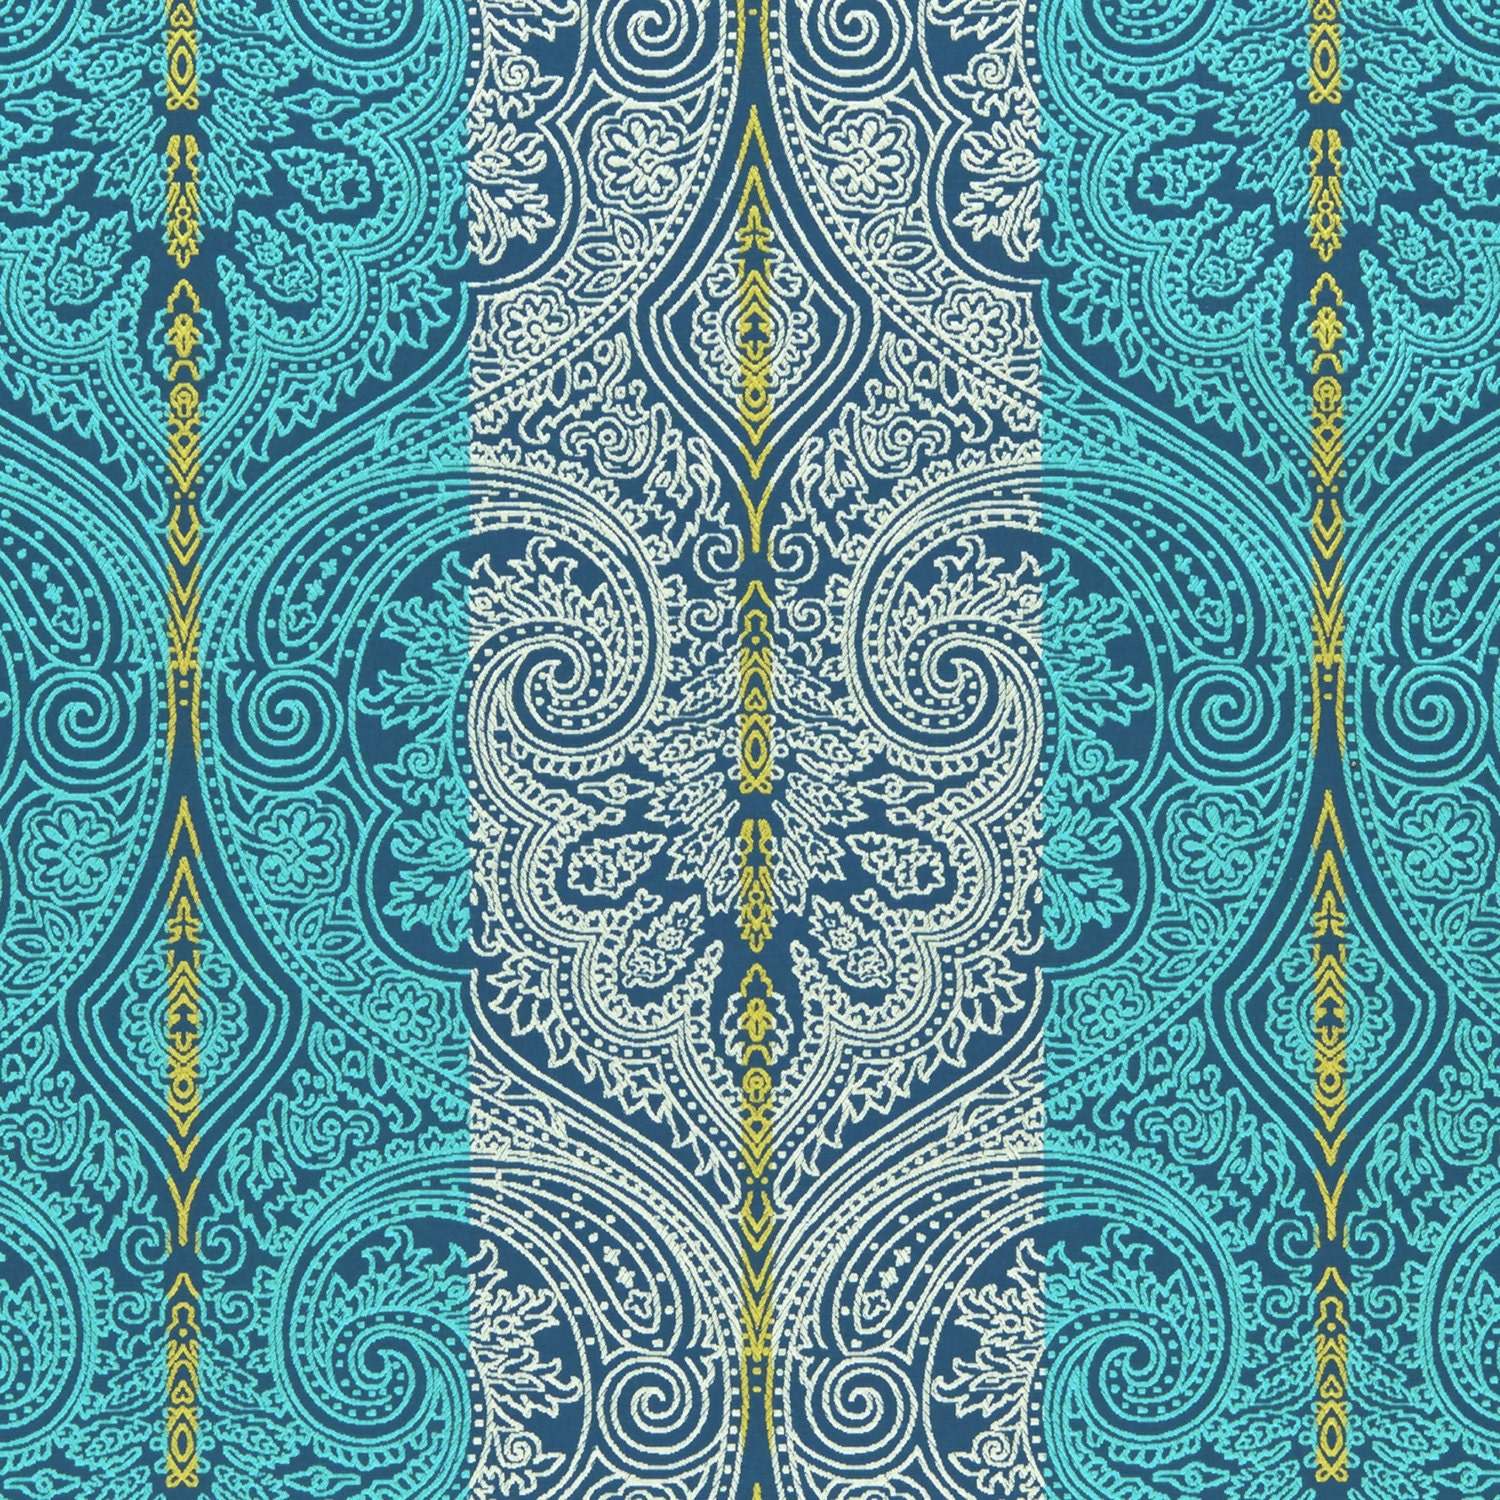 Bradberry Downs Blue Aqua Teal Light Green Yellow Wool: Turquoise Damask Upholstery Fabric Navy Blue Yellow